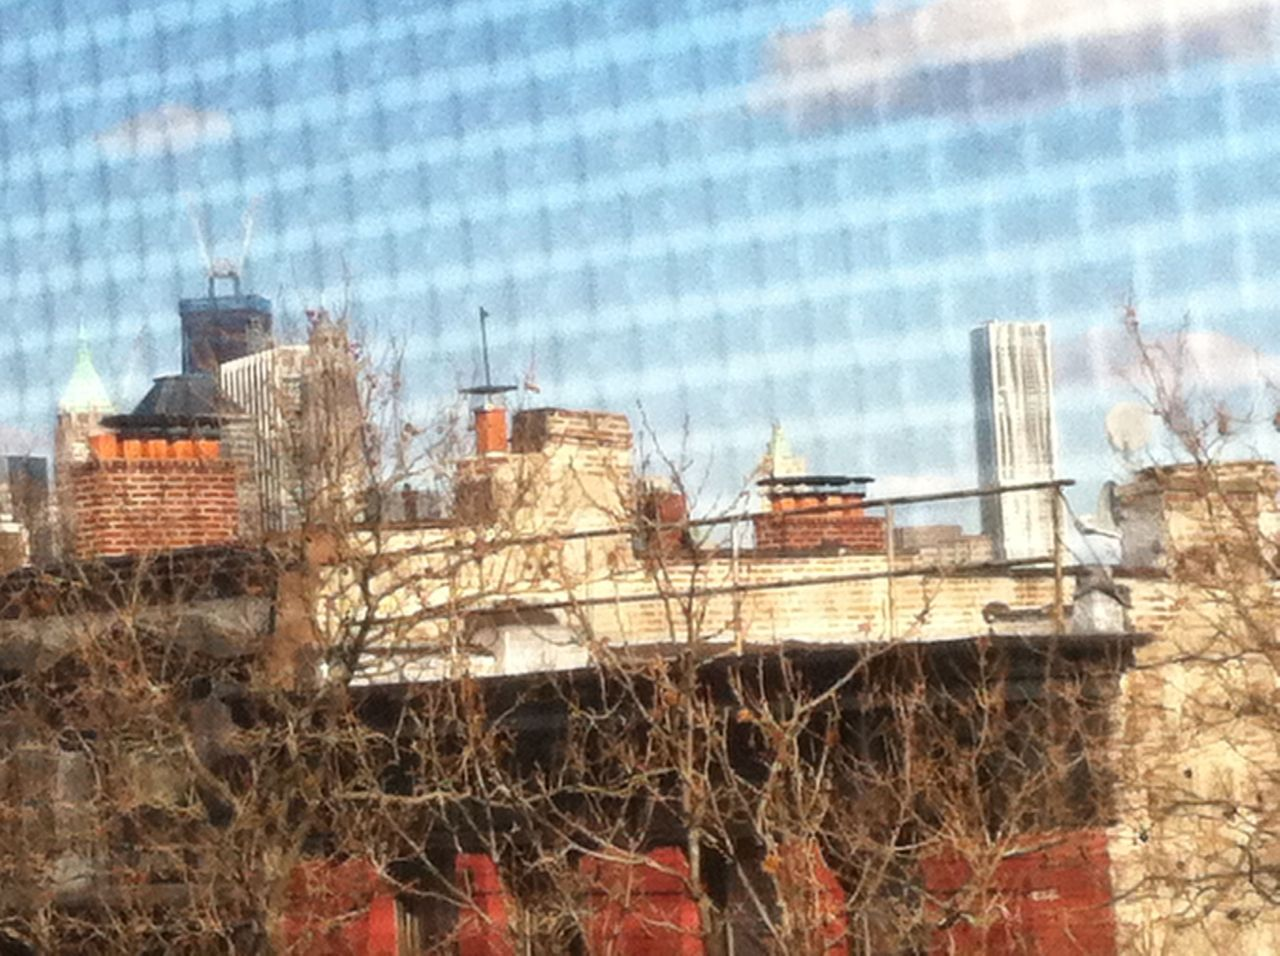 Lower Manhattan, as seen from my bedroom window. One World Trade Center (left) is going up at a rate of one story per week and was 92 stories tall on February 17th, one week ago. That puts it at 93 stories, 12 shy of its final height (not to mention the spire). This thing is awesomely massive. When my wife and I moved into our cobble hill apartment, we could see just the tops of Manhattan's buildings. Now, with the Gehry building and 1WTC coming into its own, we have a phenomenal view.